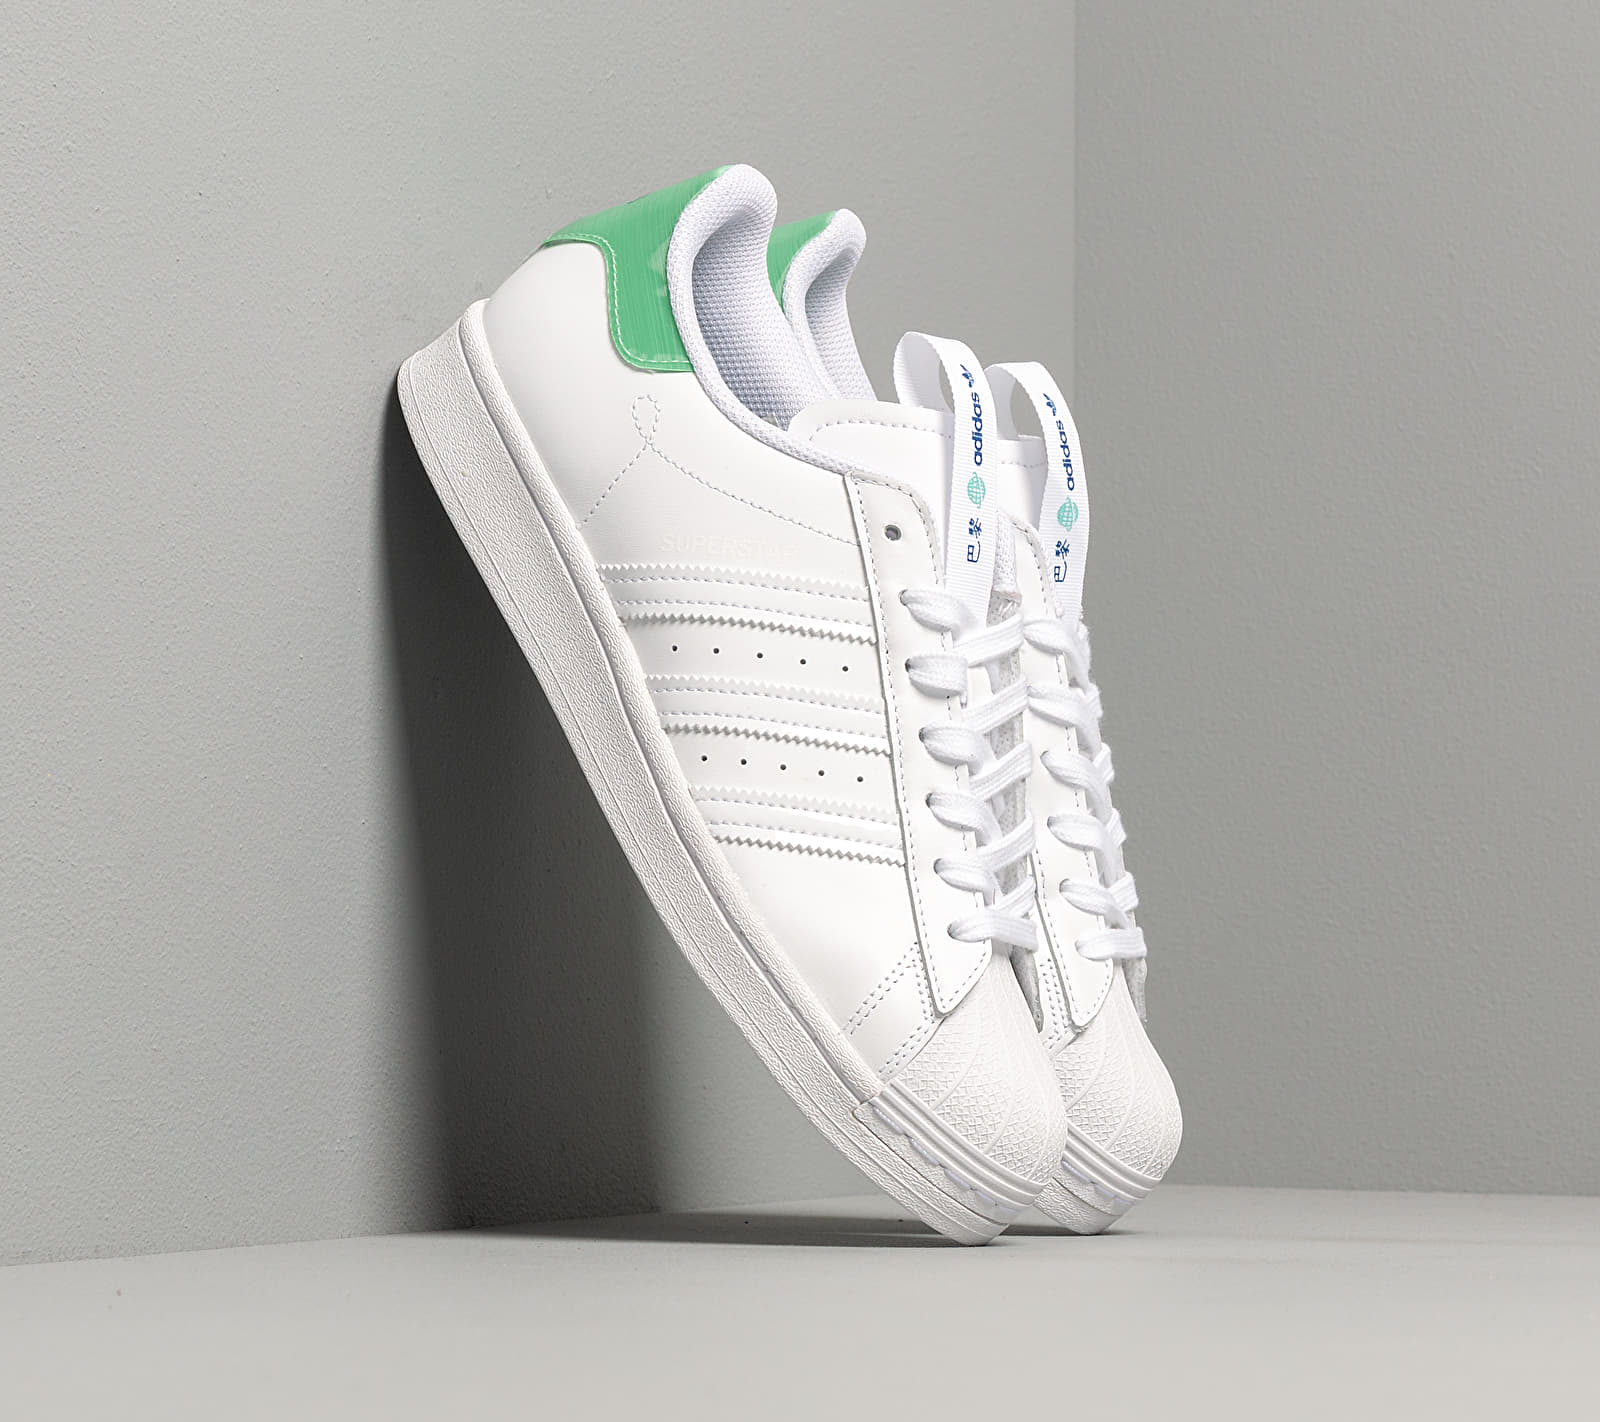 adidas Superstar Ftwr White/ Prism Mint/ Collegiate Royal FW2847